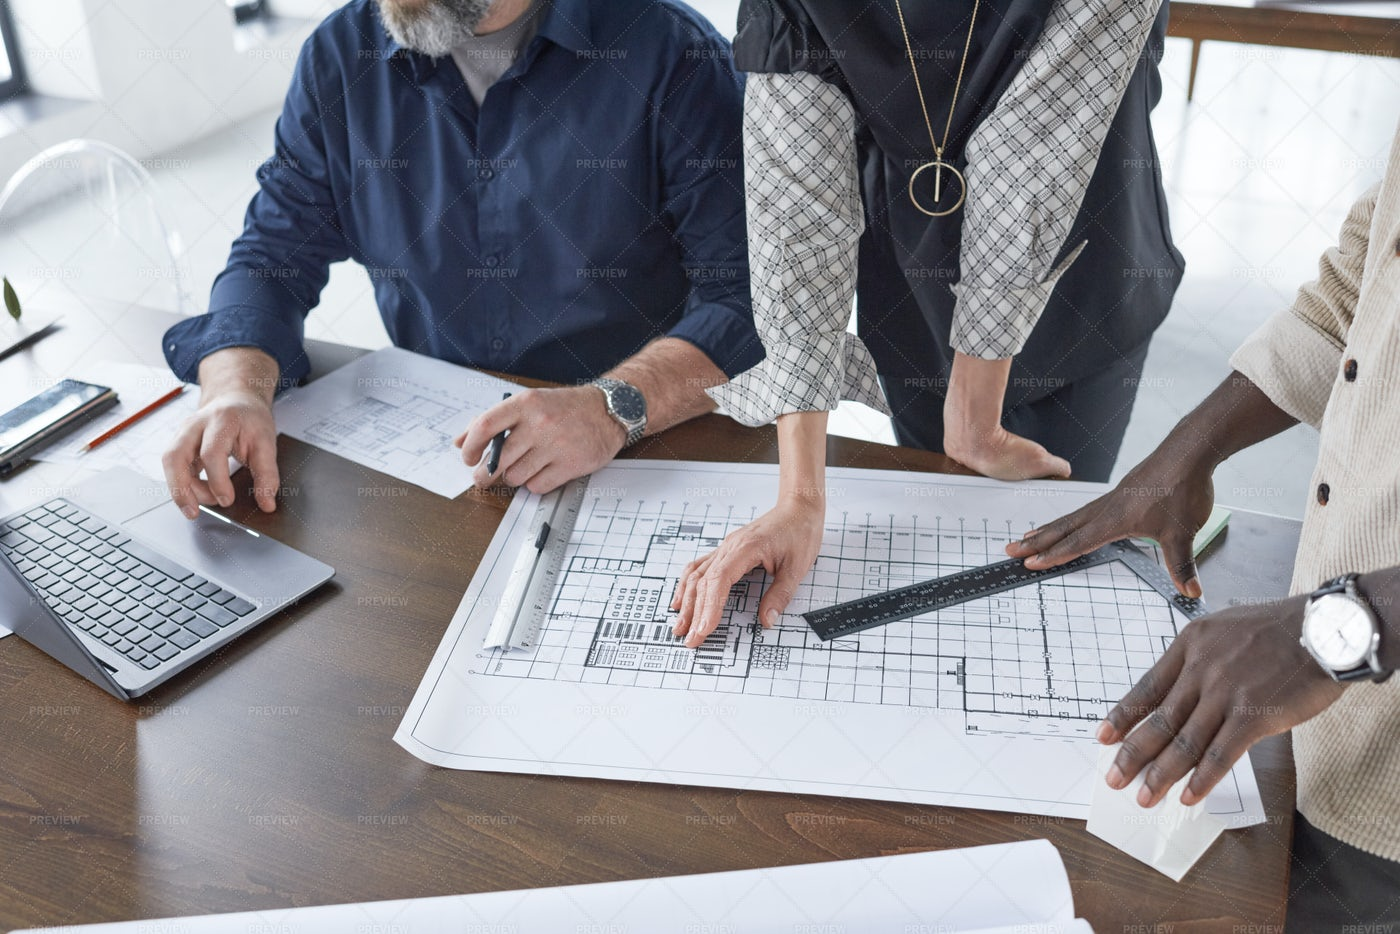 Drawing Blueprints In Team: Stock Photos